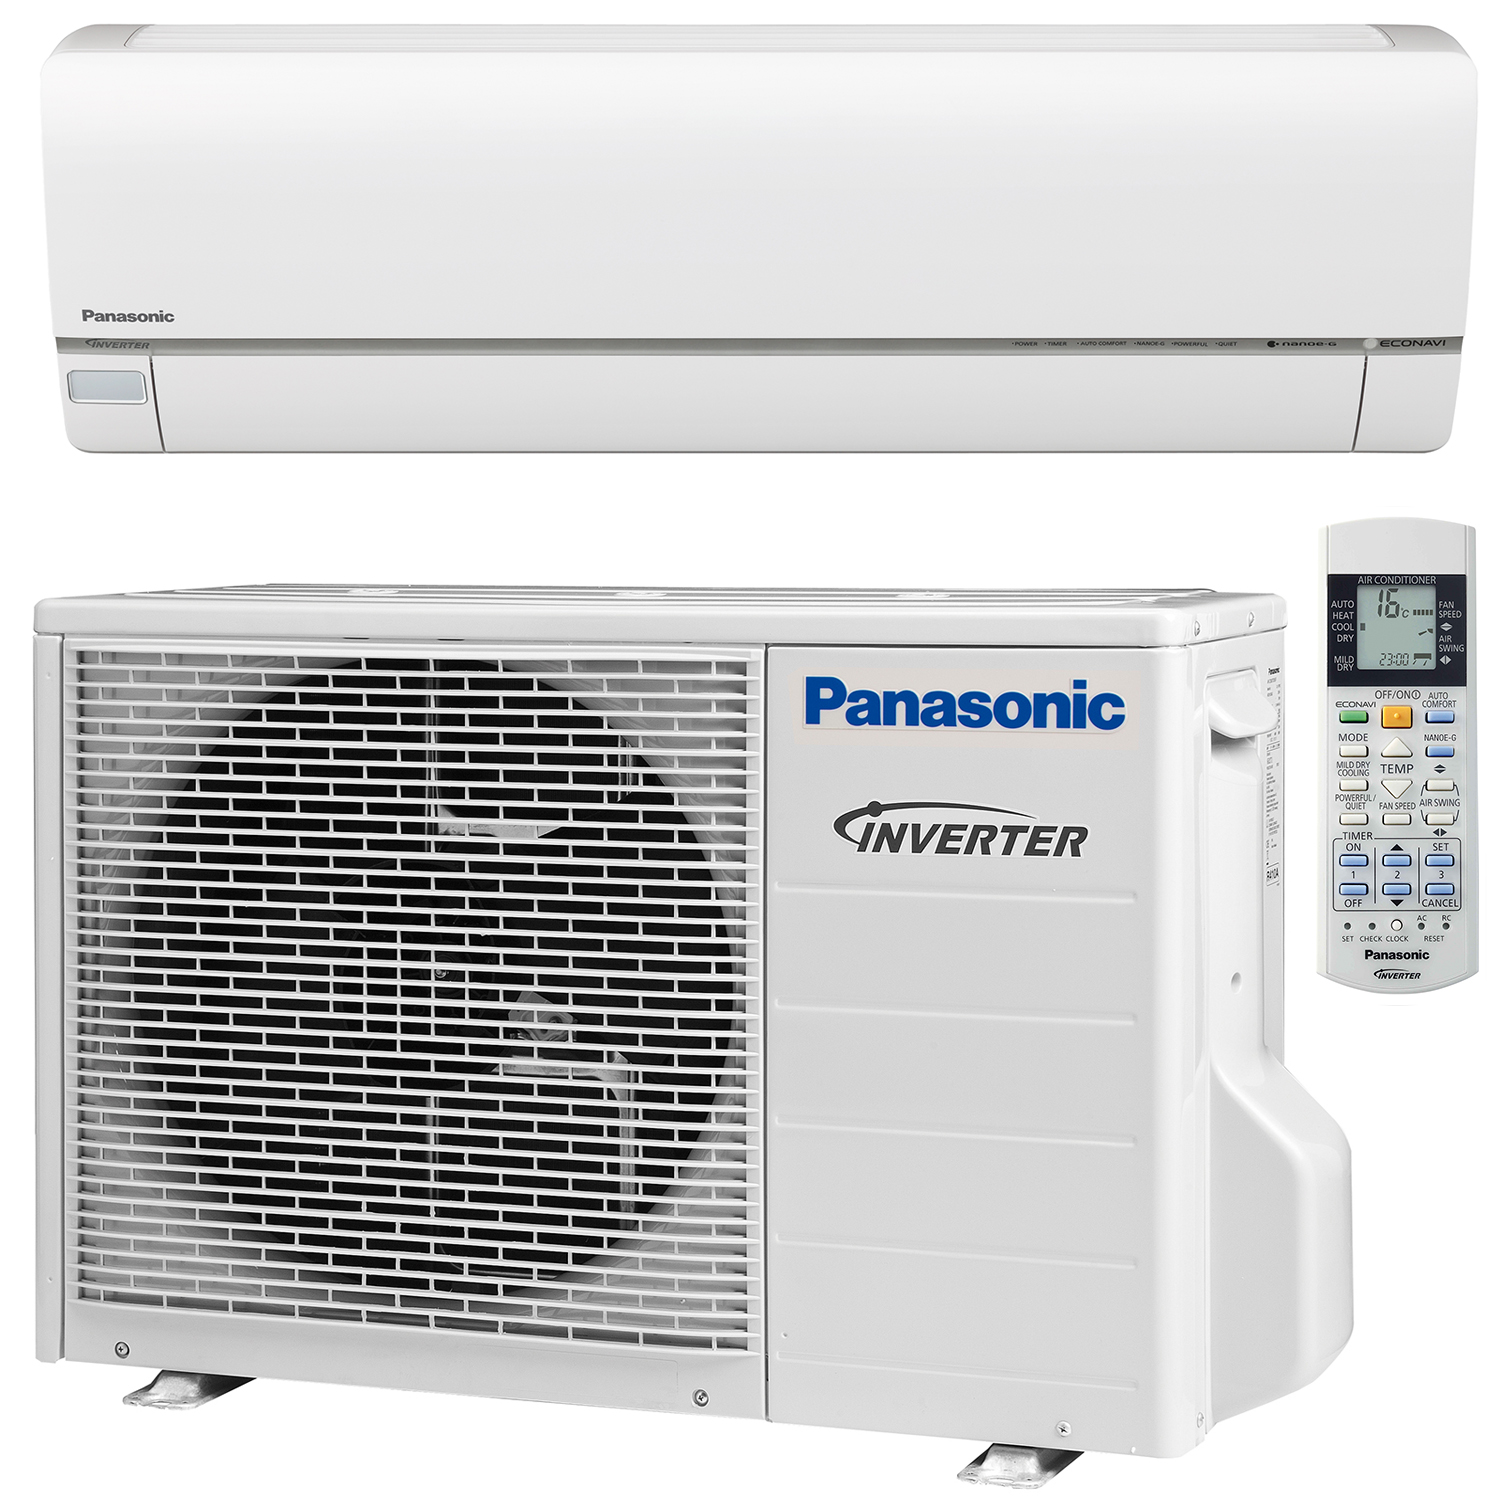 Panasonic Inverter + Bomba de calor